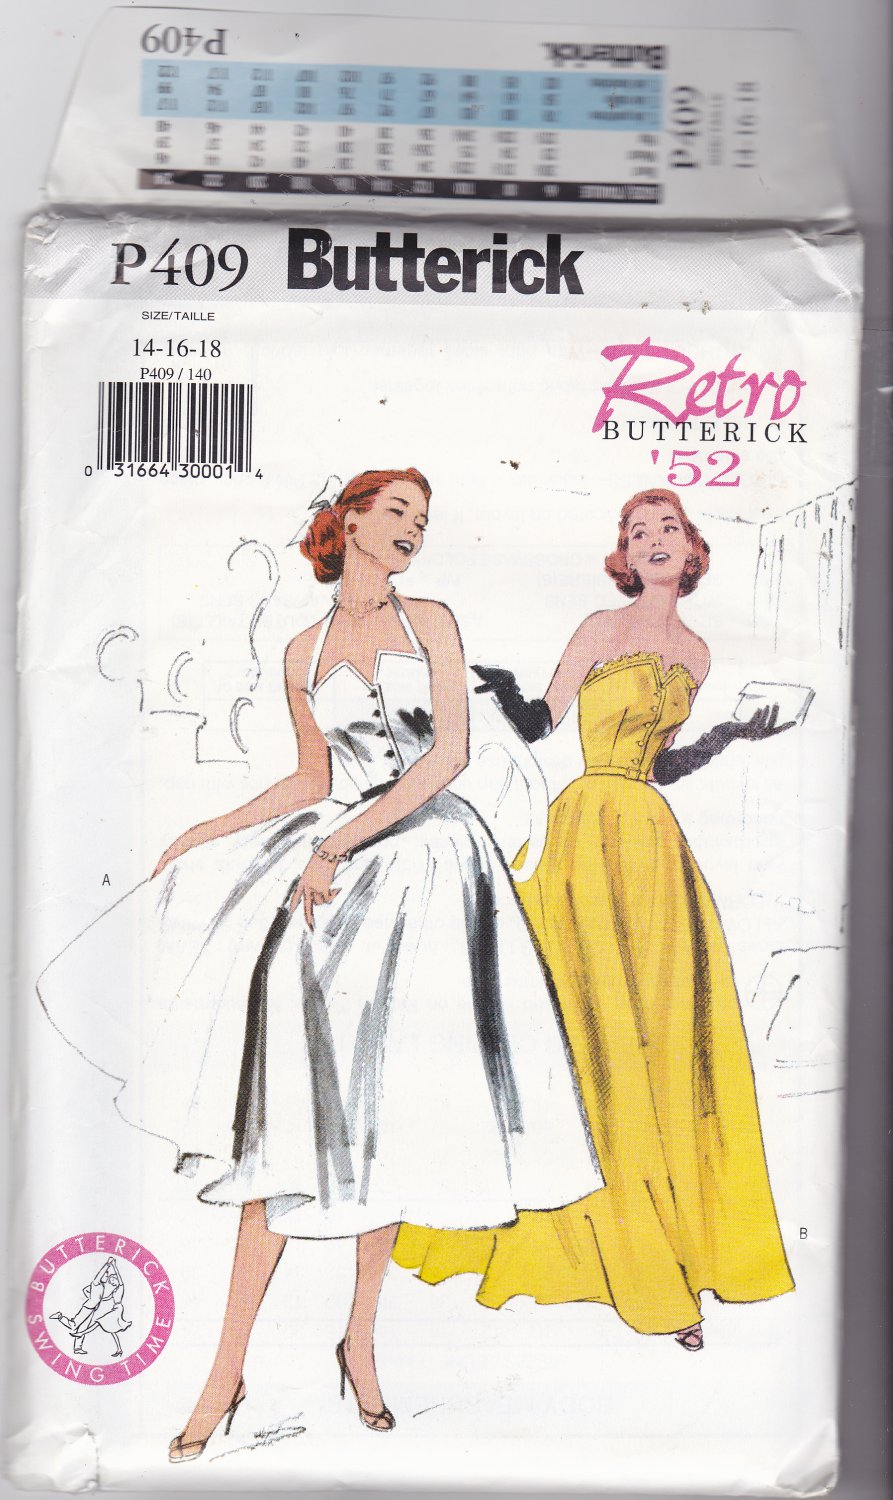 Butterick P409 Pattern Uncut 14 16 18 Retro '52 Fitted Bodice Strapless or Straps Flared Skirt Dress